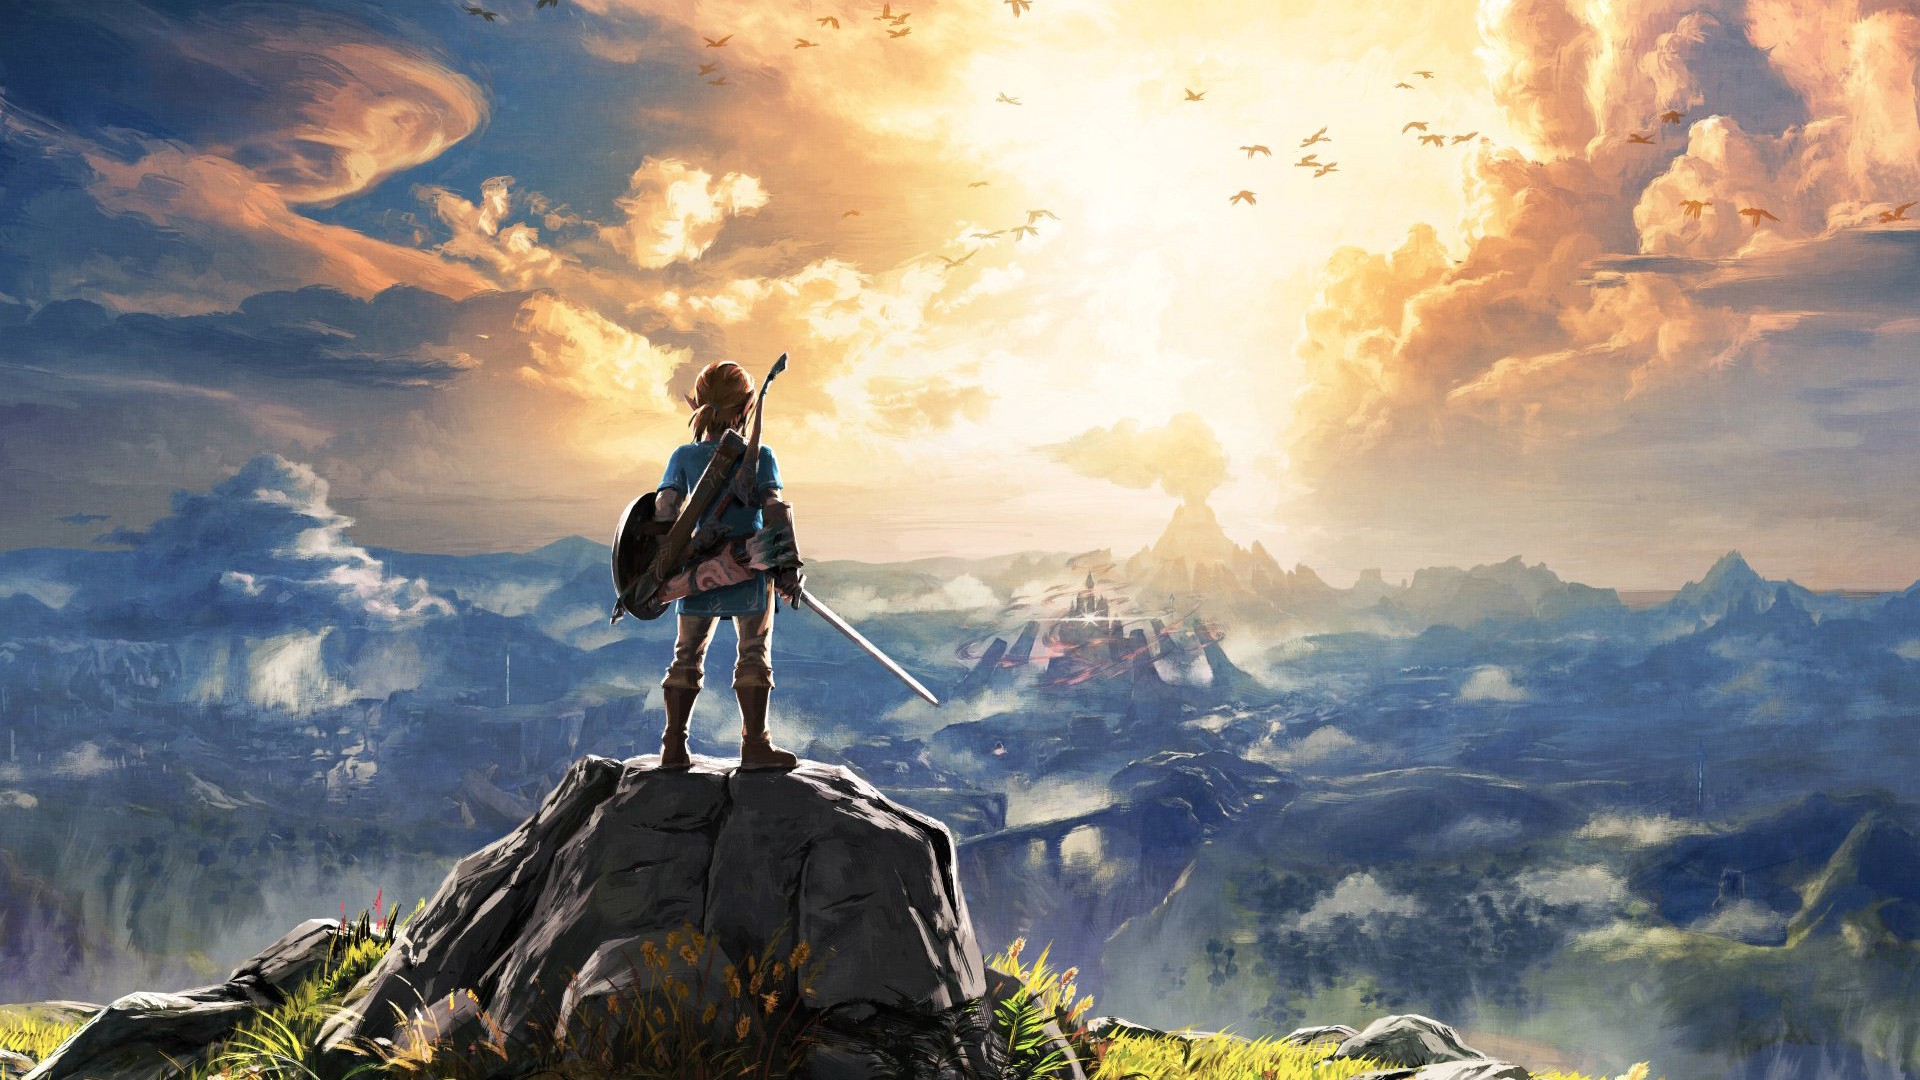 Promotional Art for Breath of the Wild